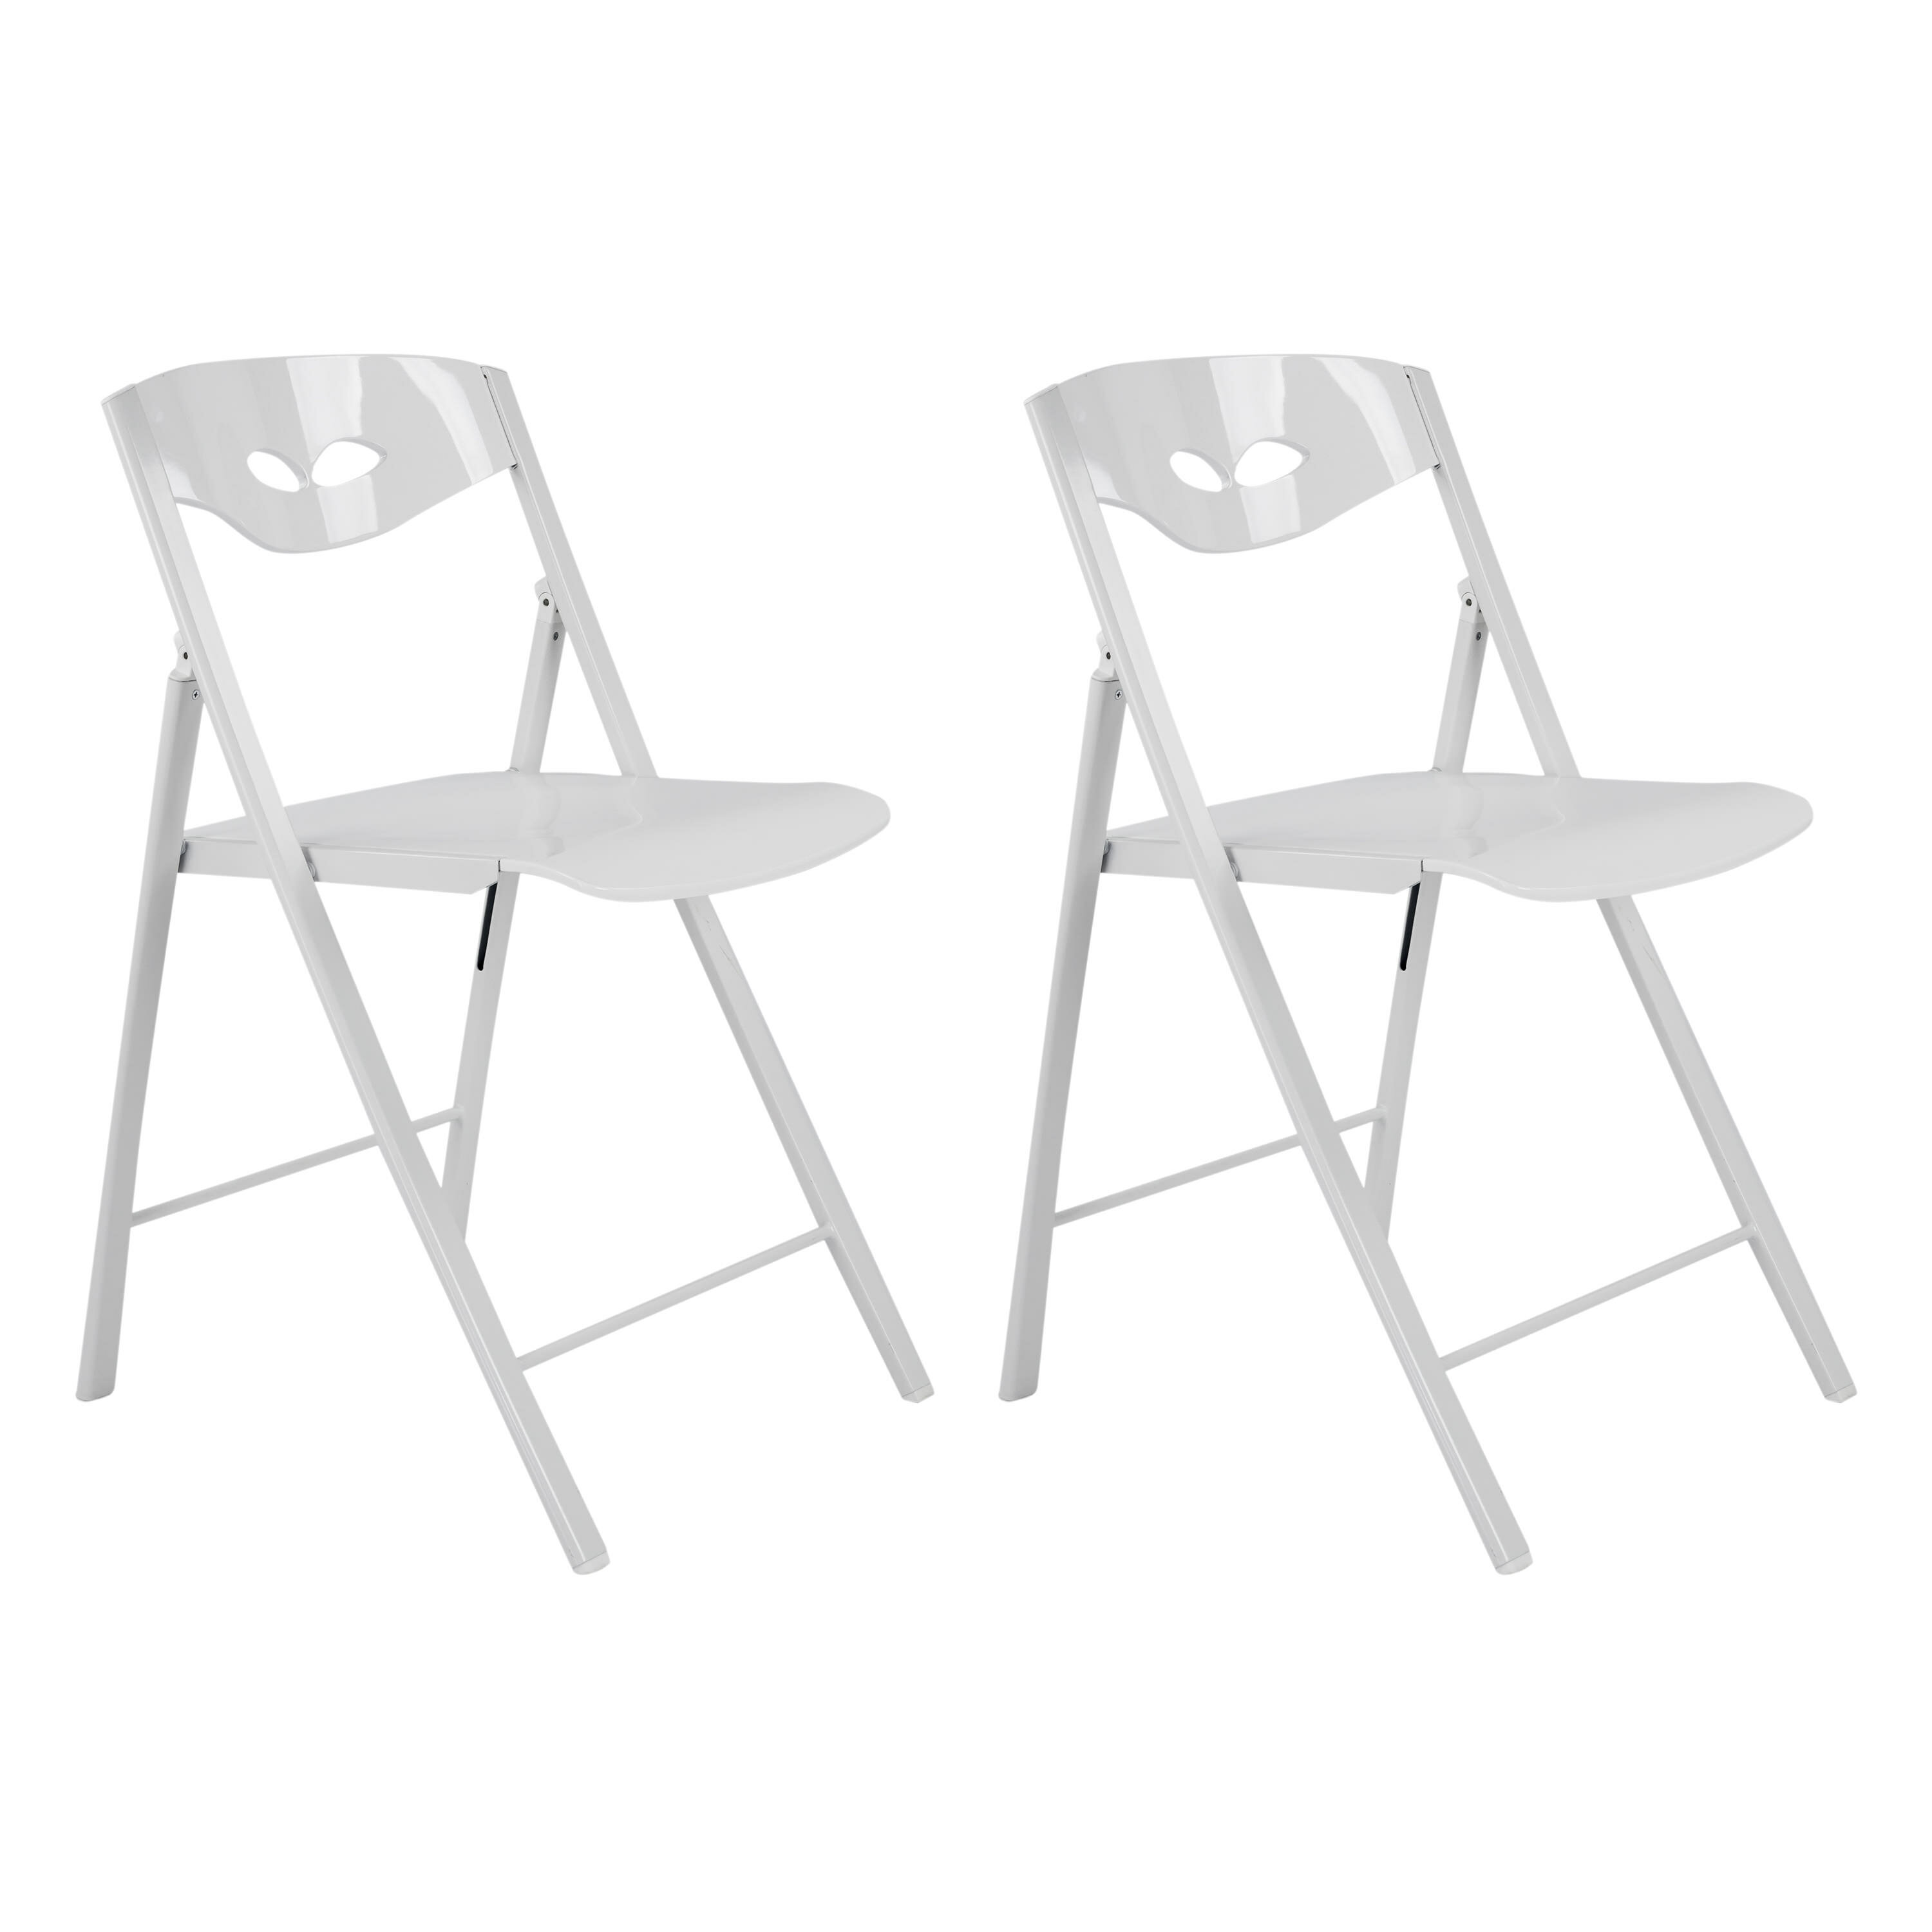 CORNER HOUSEWARES Contemporary Designed Sturdy Metal Folding Chair